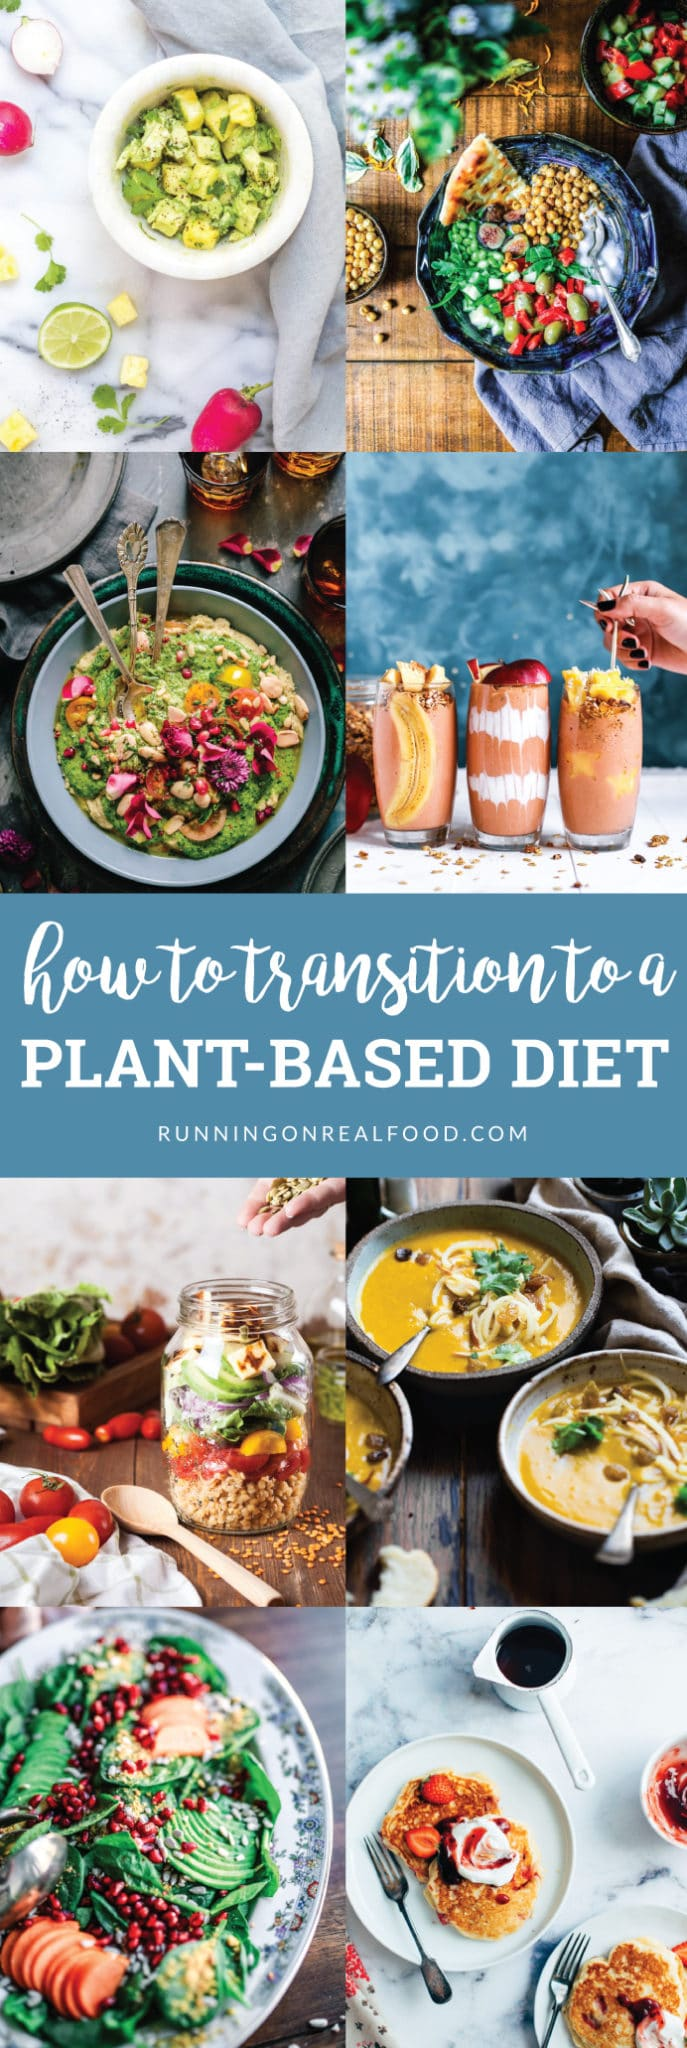 Whether it's to lose weight, prevent disease or reduce harm to animals, learn how to transition to a plant-based diet by taking one small step at a time.